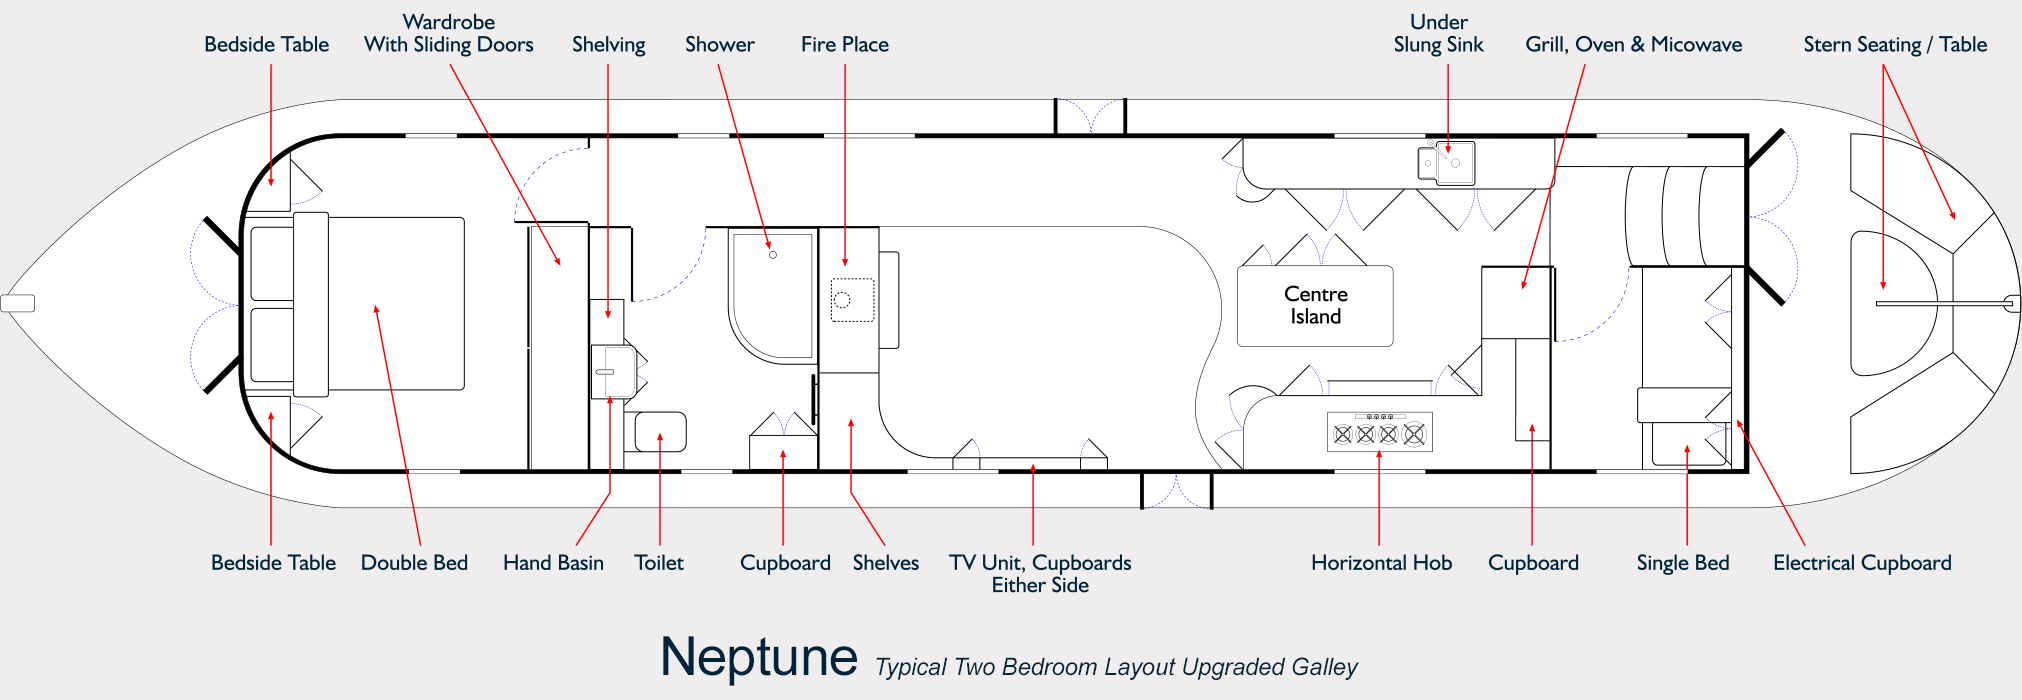 neptune-2bed-upgrade-widebeam-barge